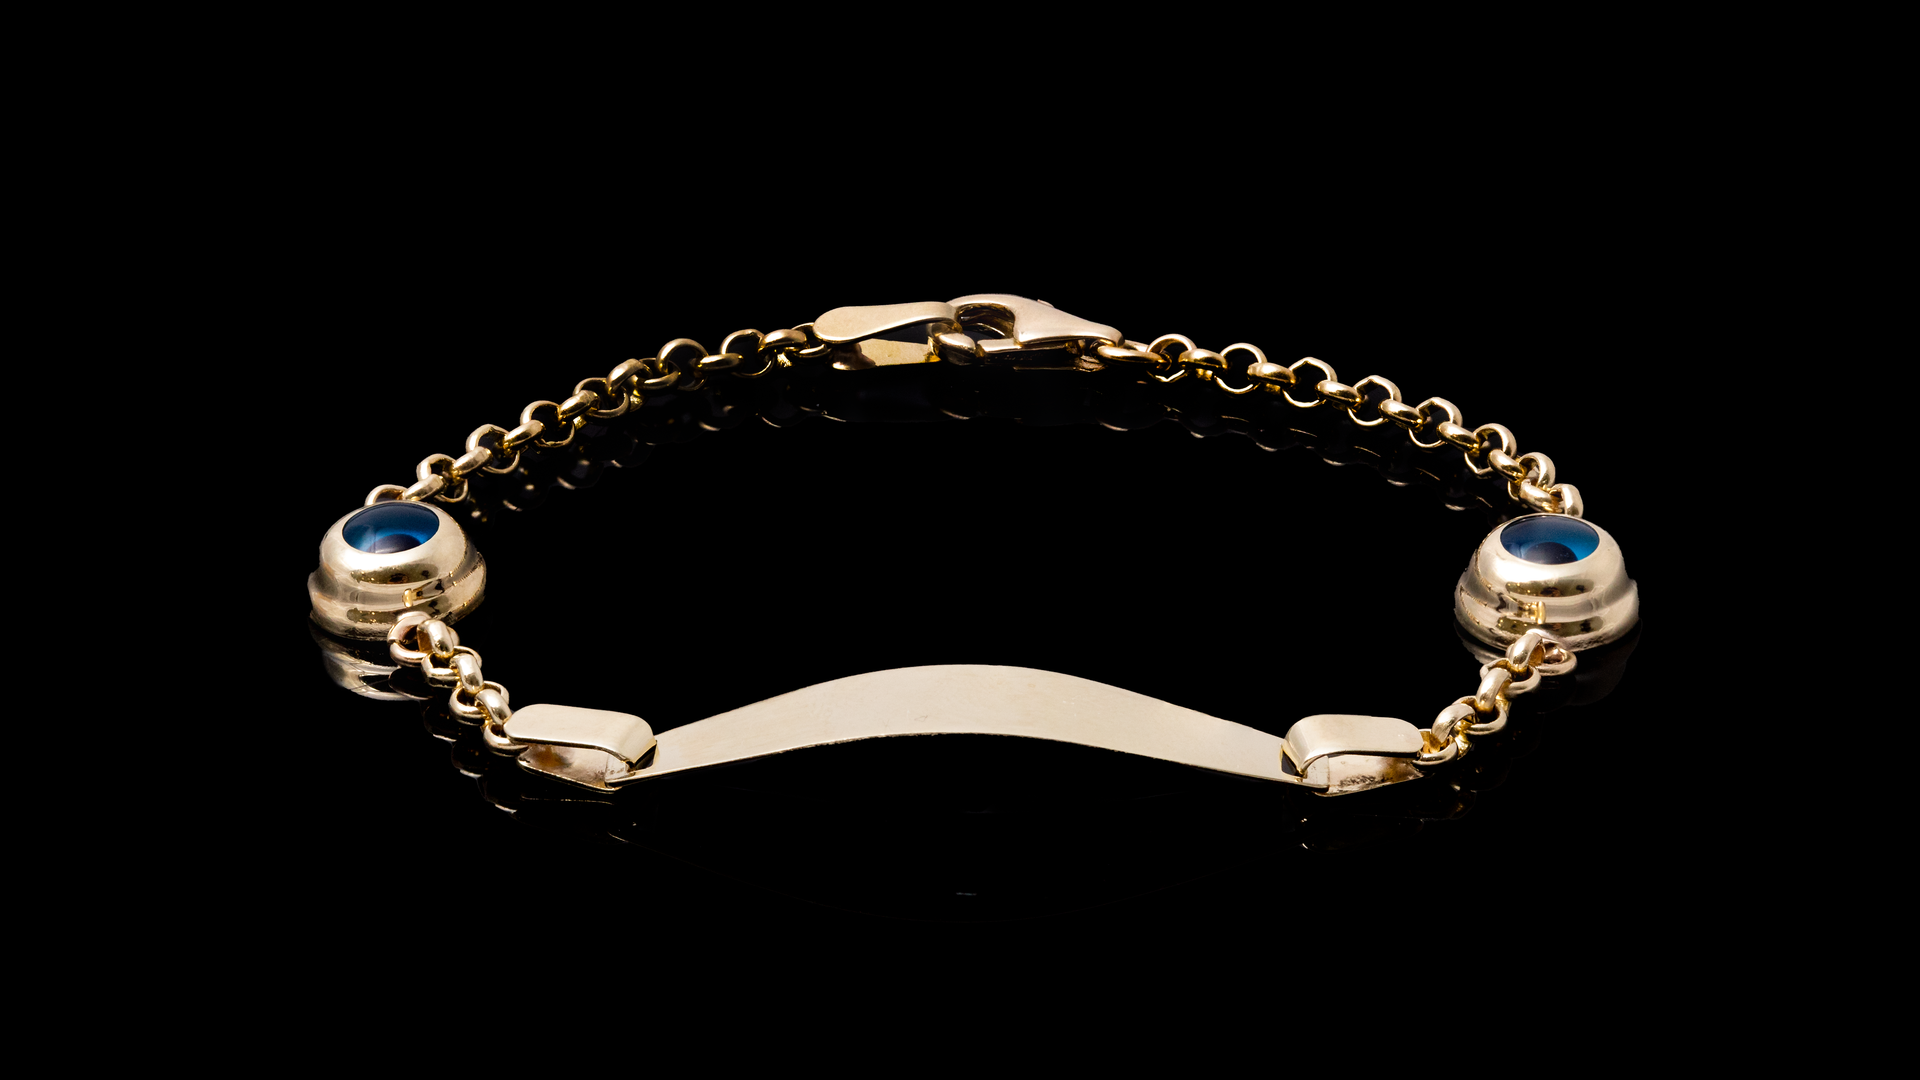 10K Yellow Gold Eye Link ID Bracelet